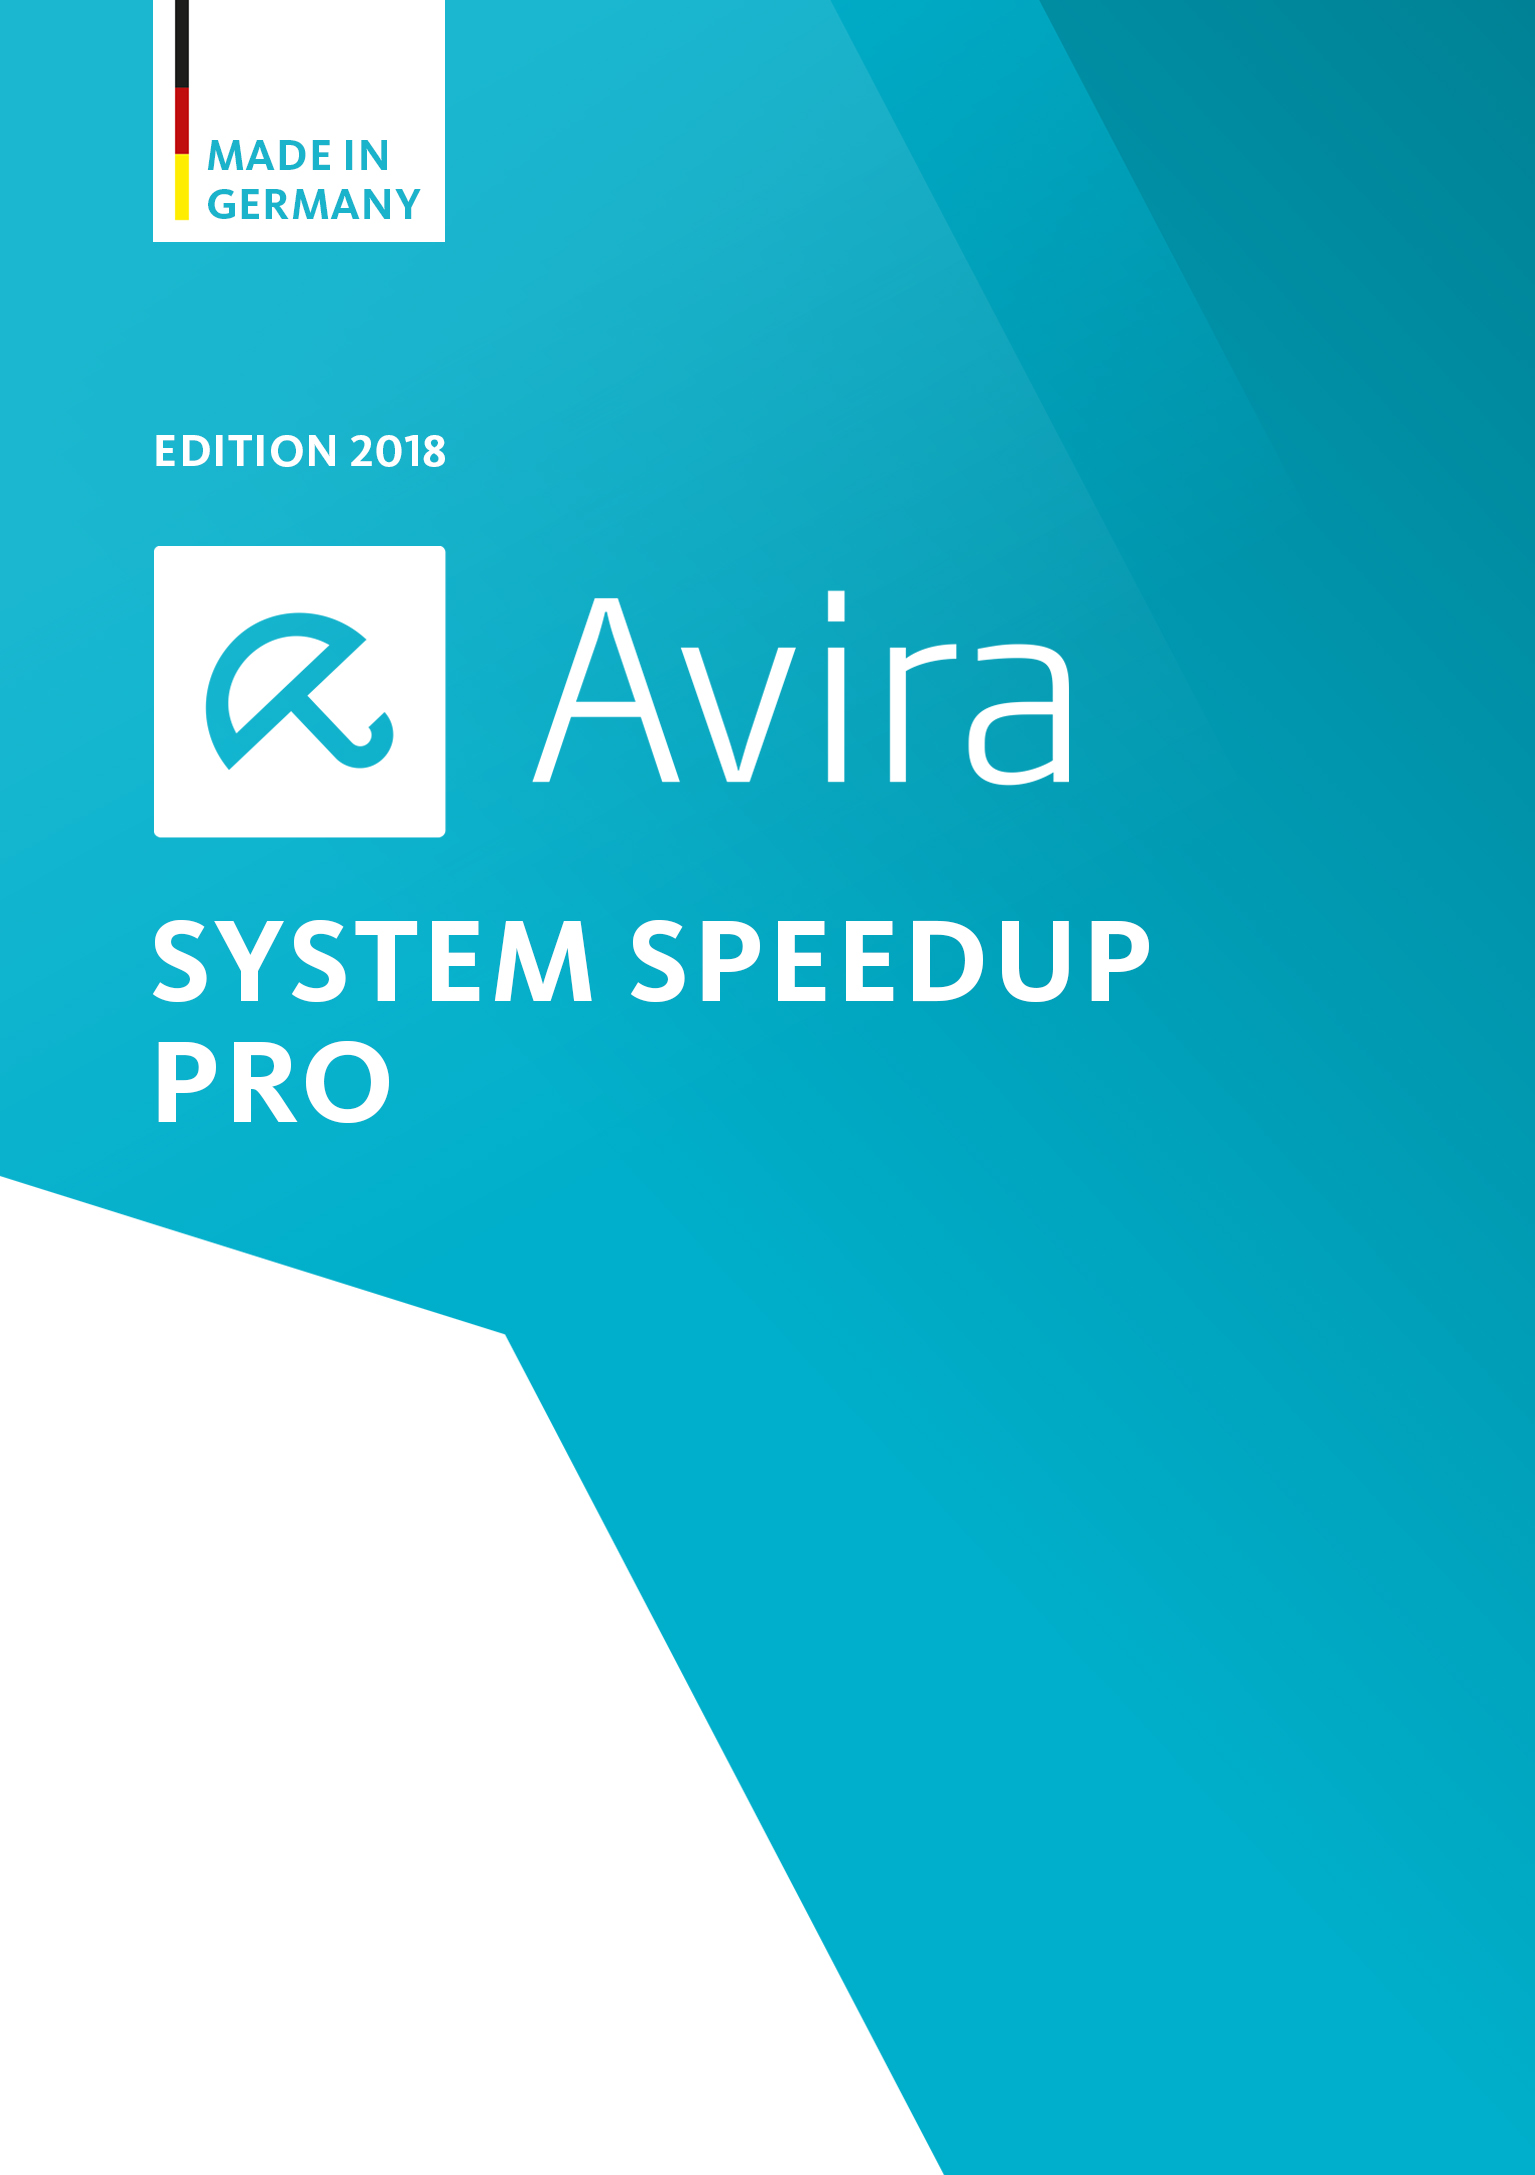 Avira System Speedup Pro Software Edition 2018 / PC Tuning Software (Jahres-Abonnement) für 1 Windows PC / Download für Windows-Betriebssysteme (7, 8, 8.1, 10) [Online Code]